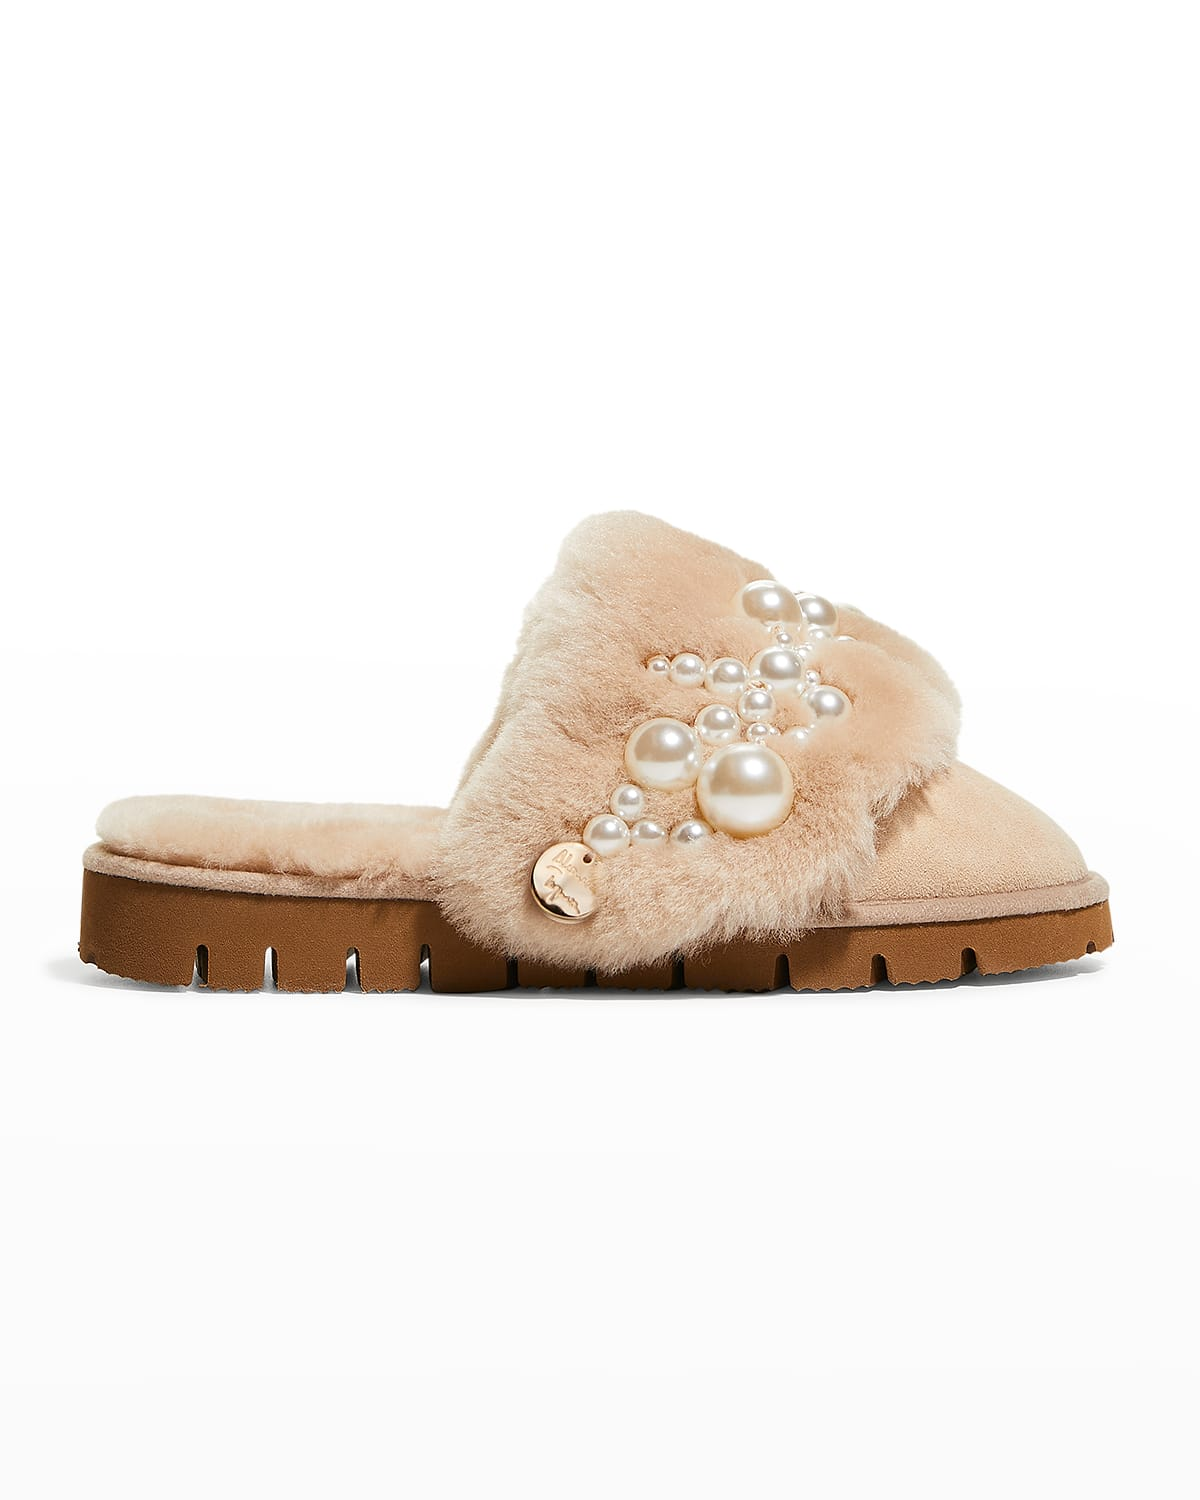 Pinctada Pearly Suede Mule Slippers